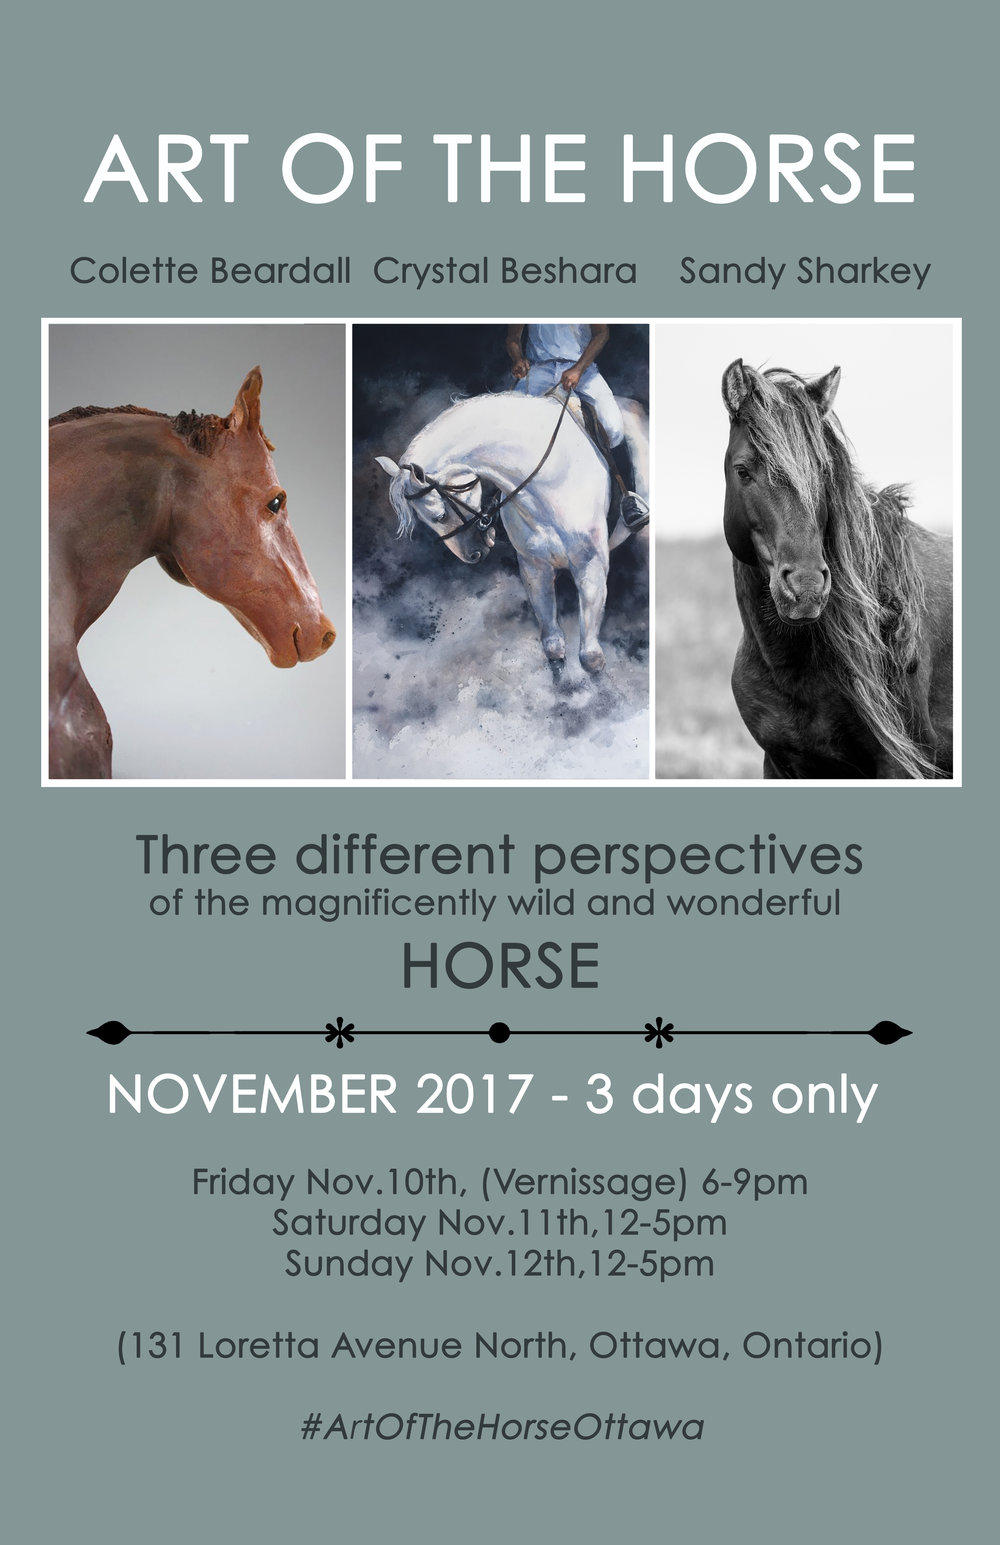 Art of the horse Final Poster   Vertical.jpg